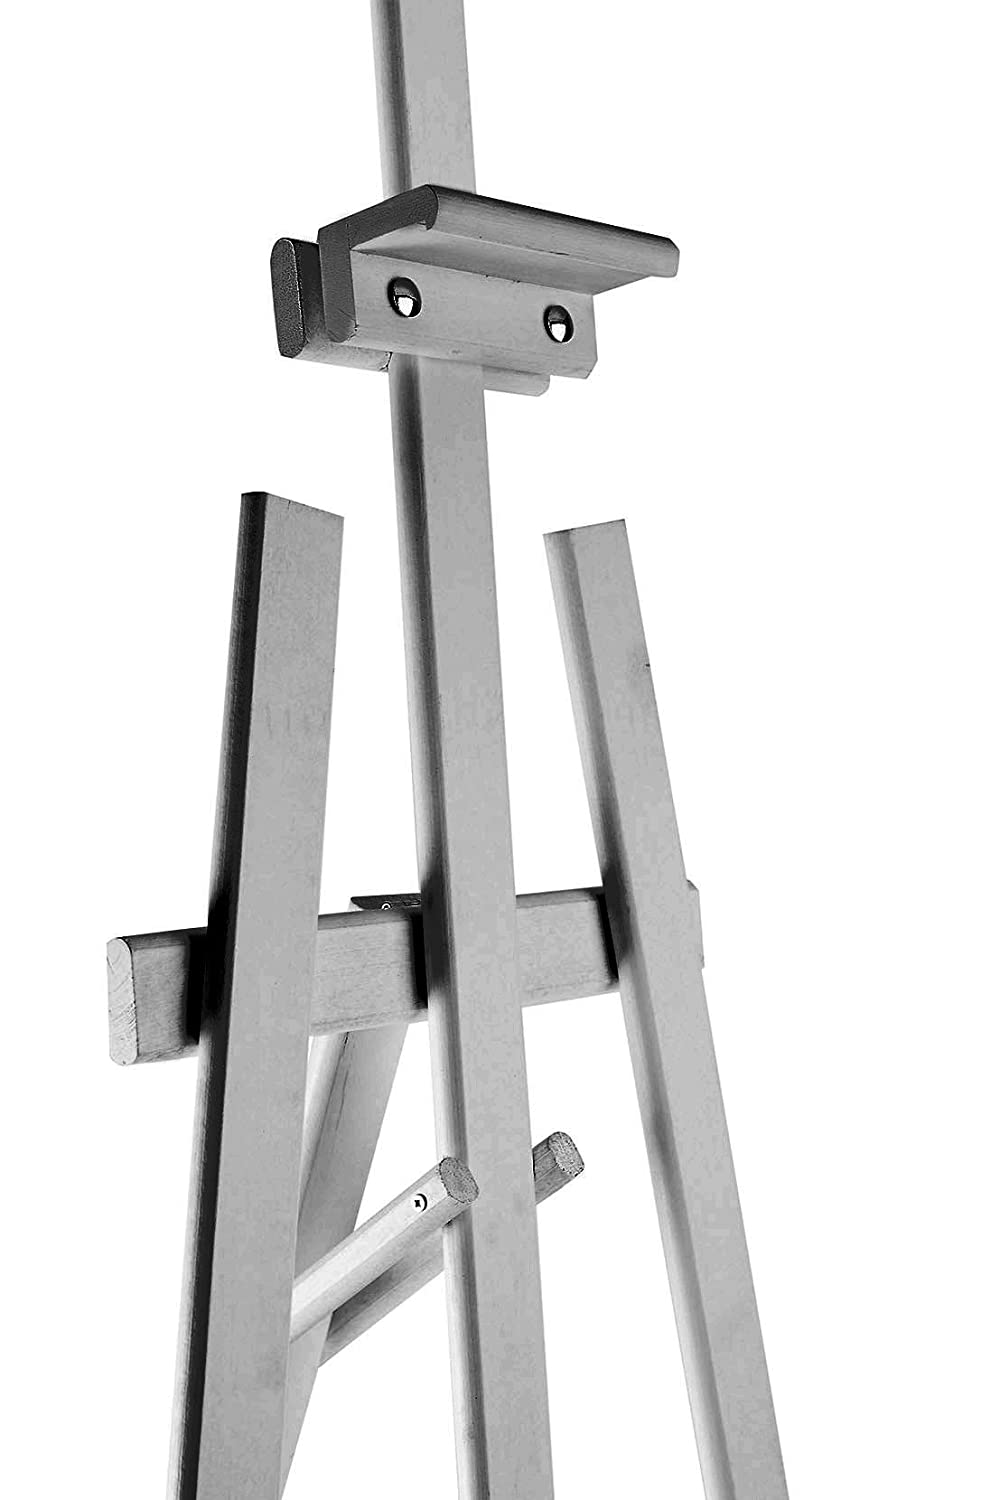 WHITE PICTURE 1800MM HIGH DISPLAY CANVAS PINE WOOD EASEL STUDIO HOLDER